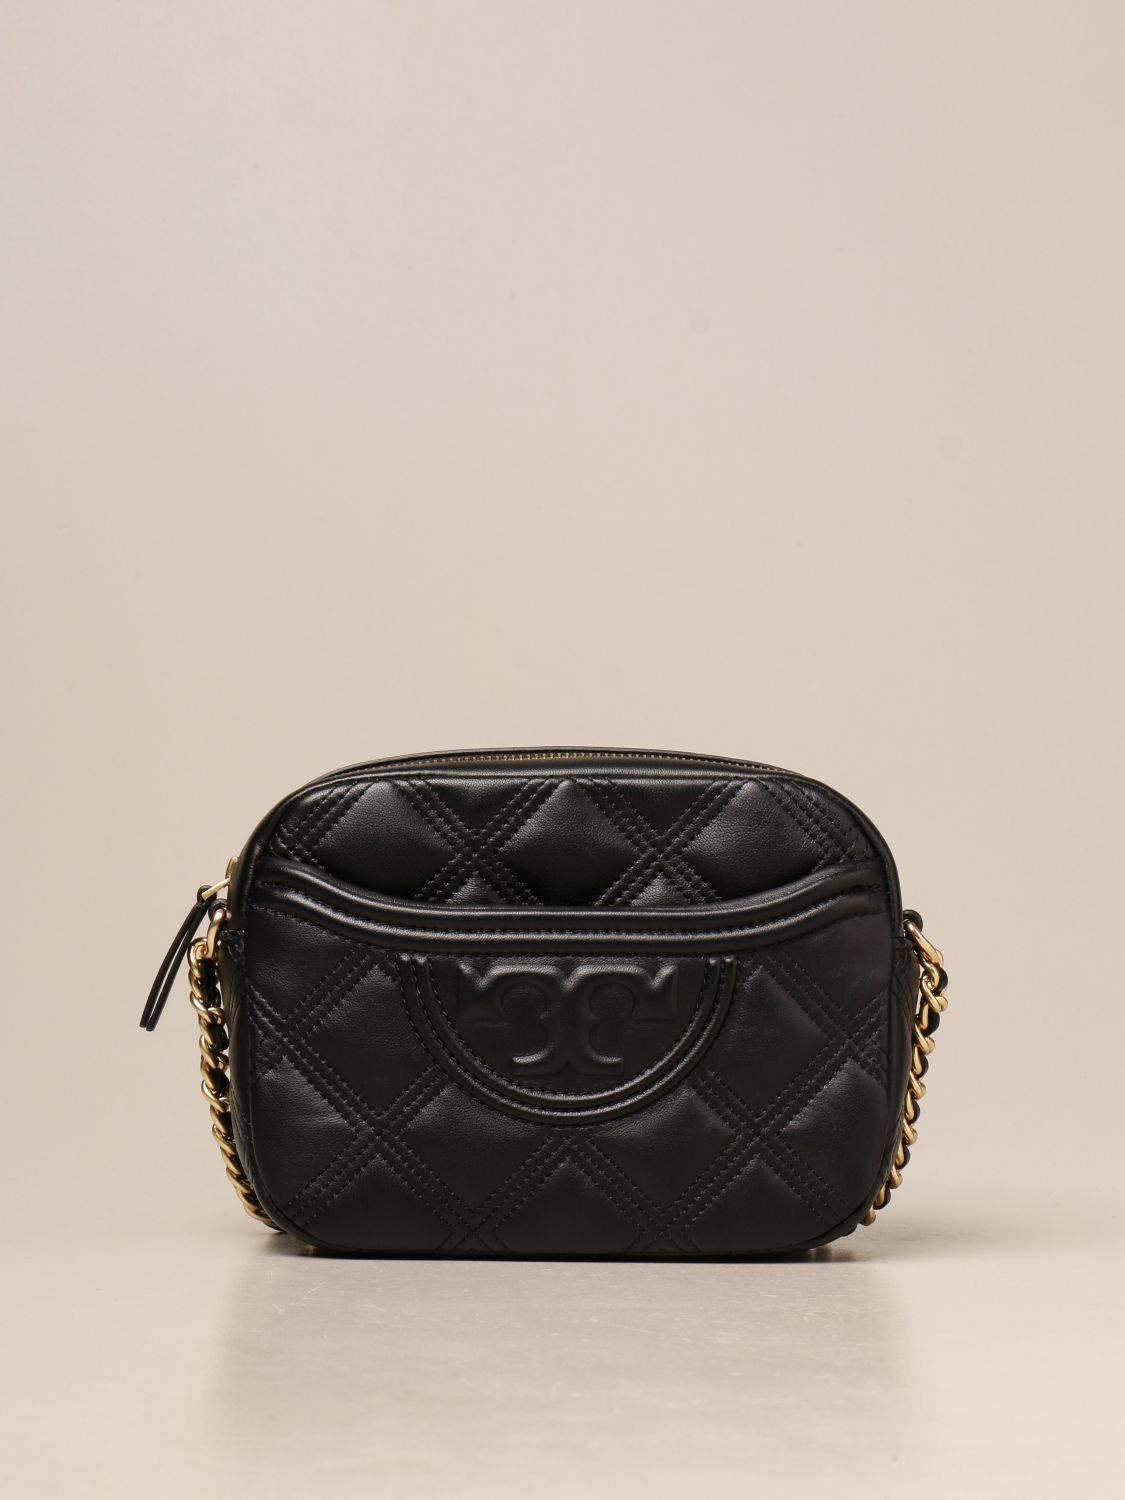 Crossbody bags Tory Burch: Feming Tory Burch bag in quilted leather black 1